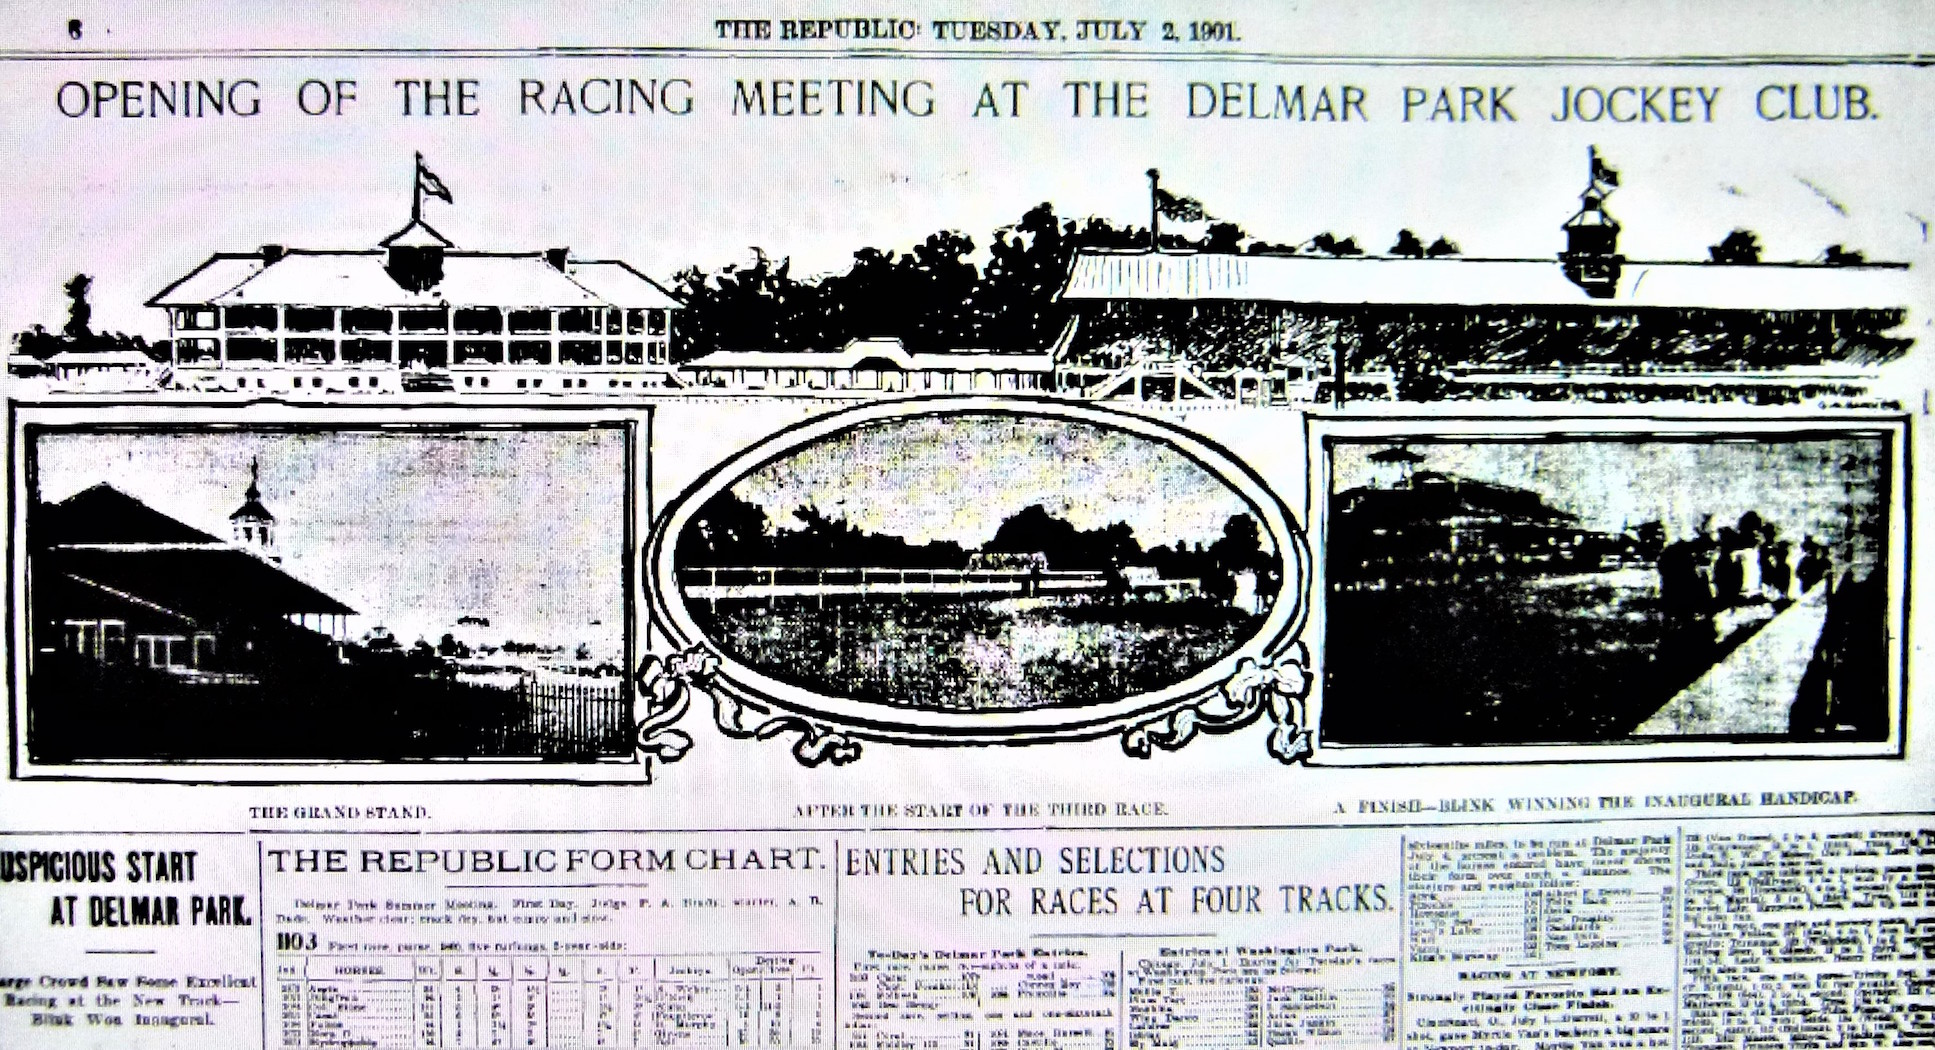 How the St Louis Republic covered the 1901 opening of Delmar Park